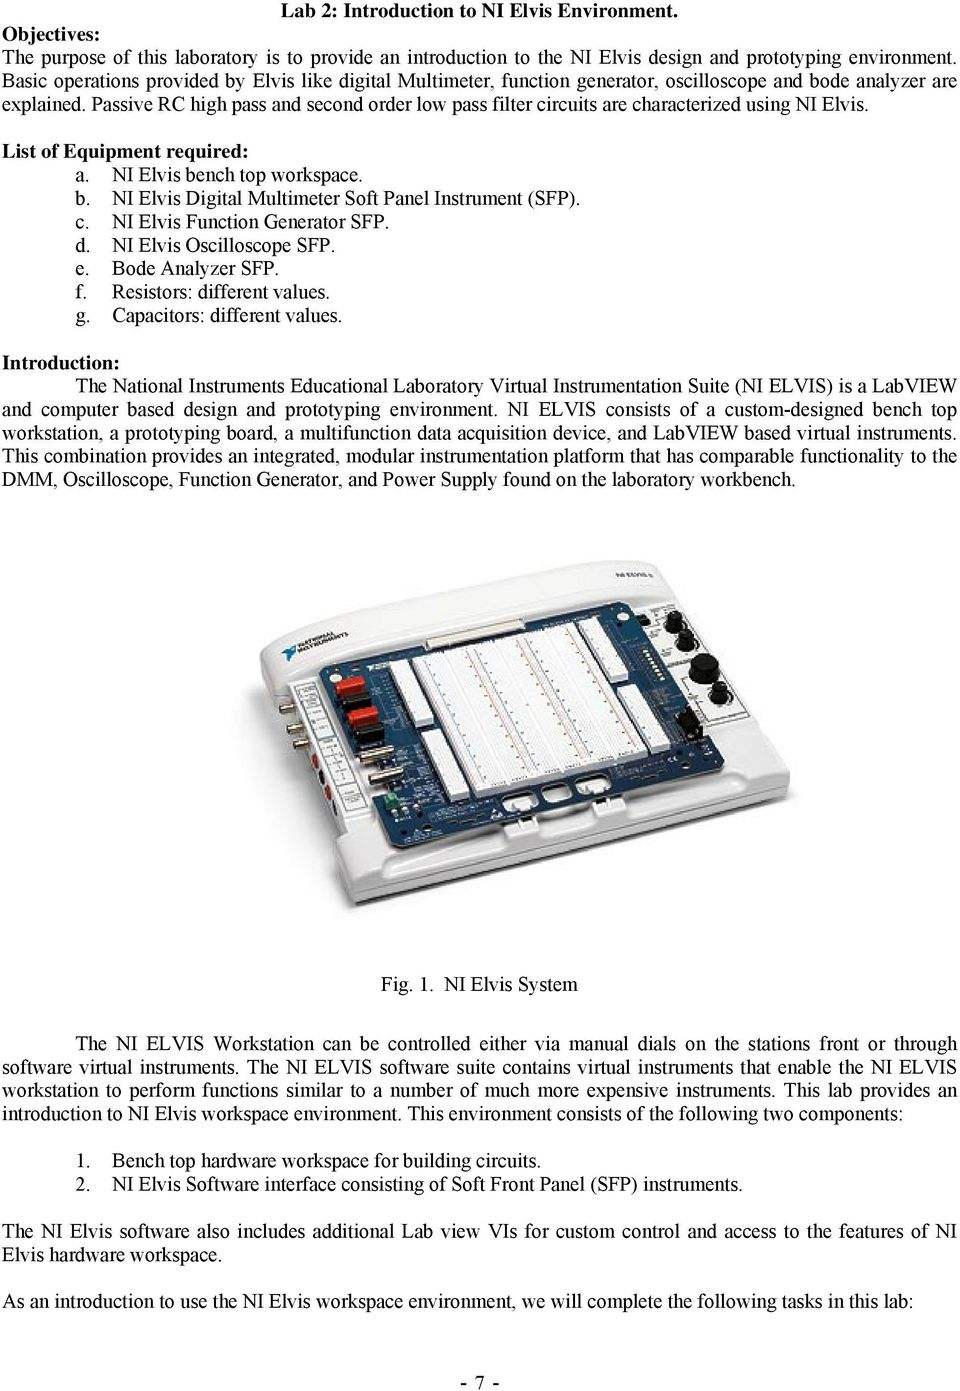 Laboratory Manual Elen 325 Electronics Pdf Electronic Circuit I Lab Passive Rc High Pass And Second Order Low Filter Circuits Are Characterized Using Ni Elvis